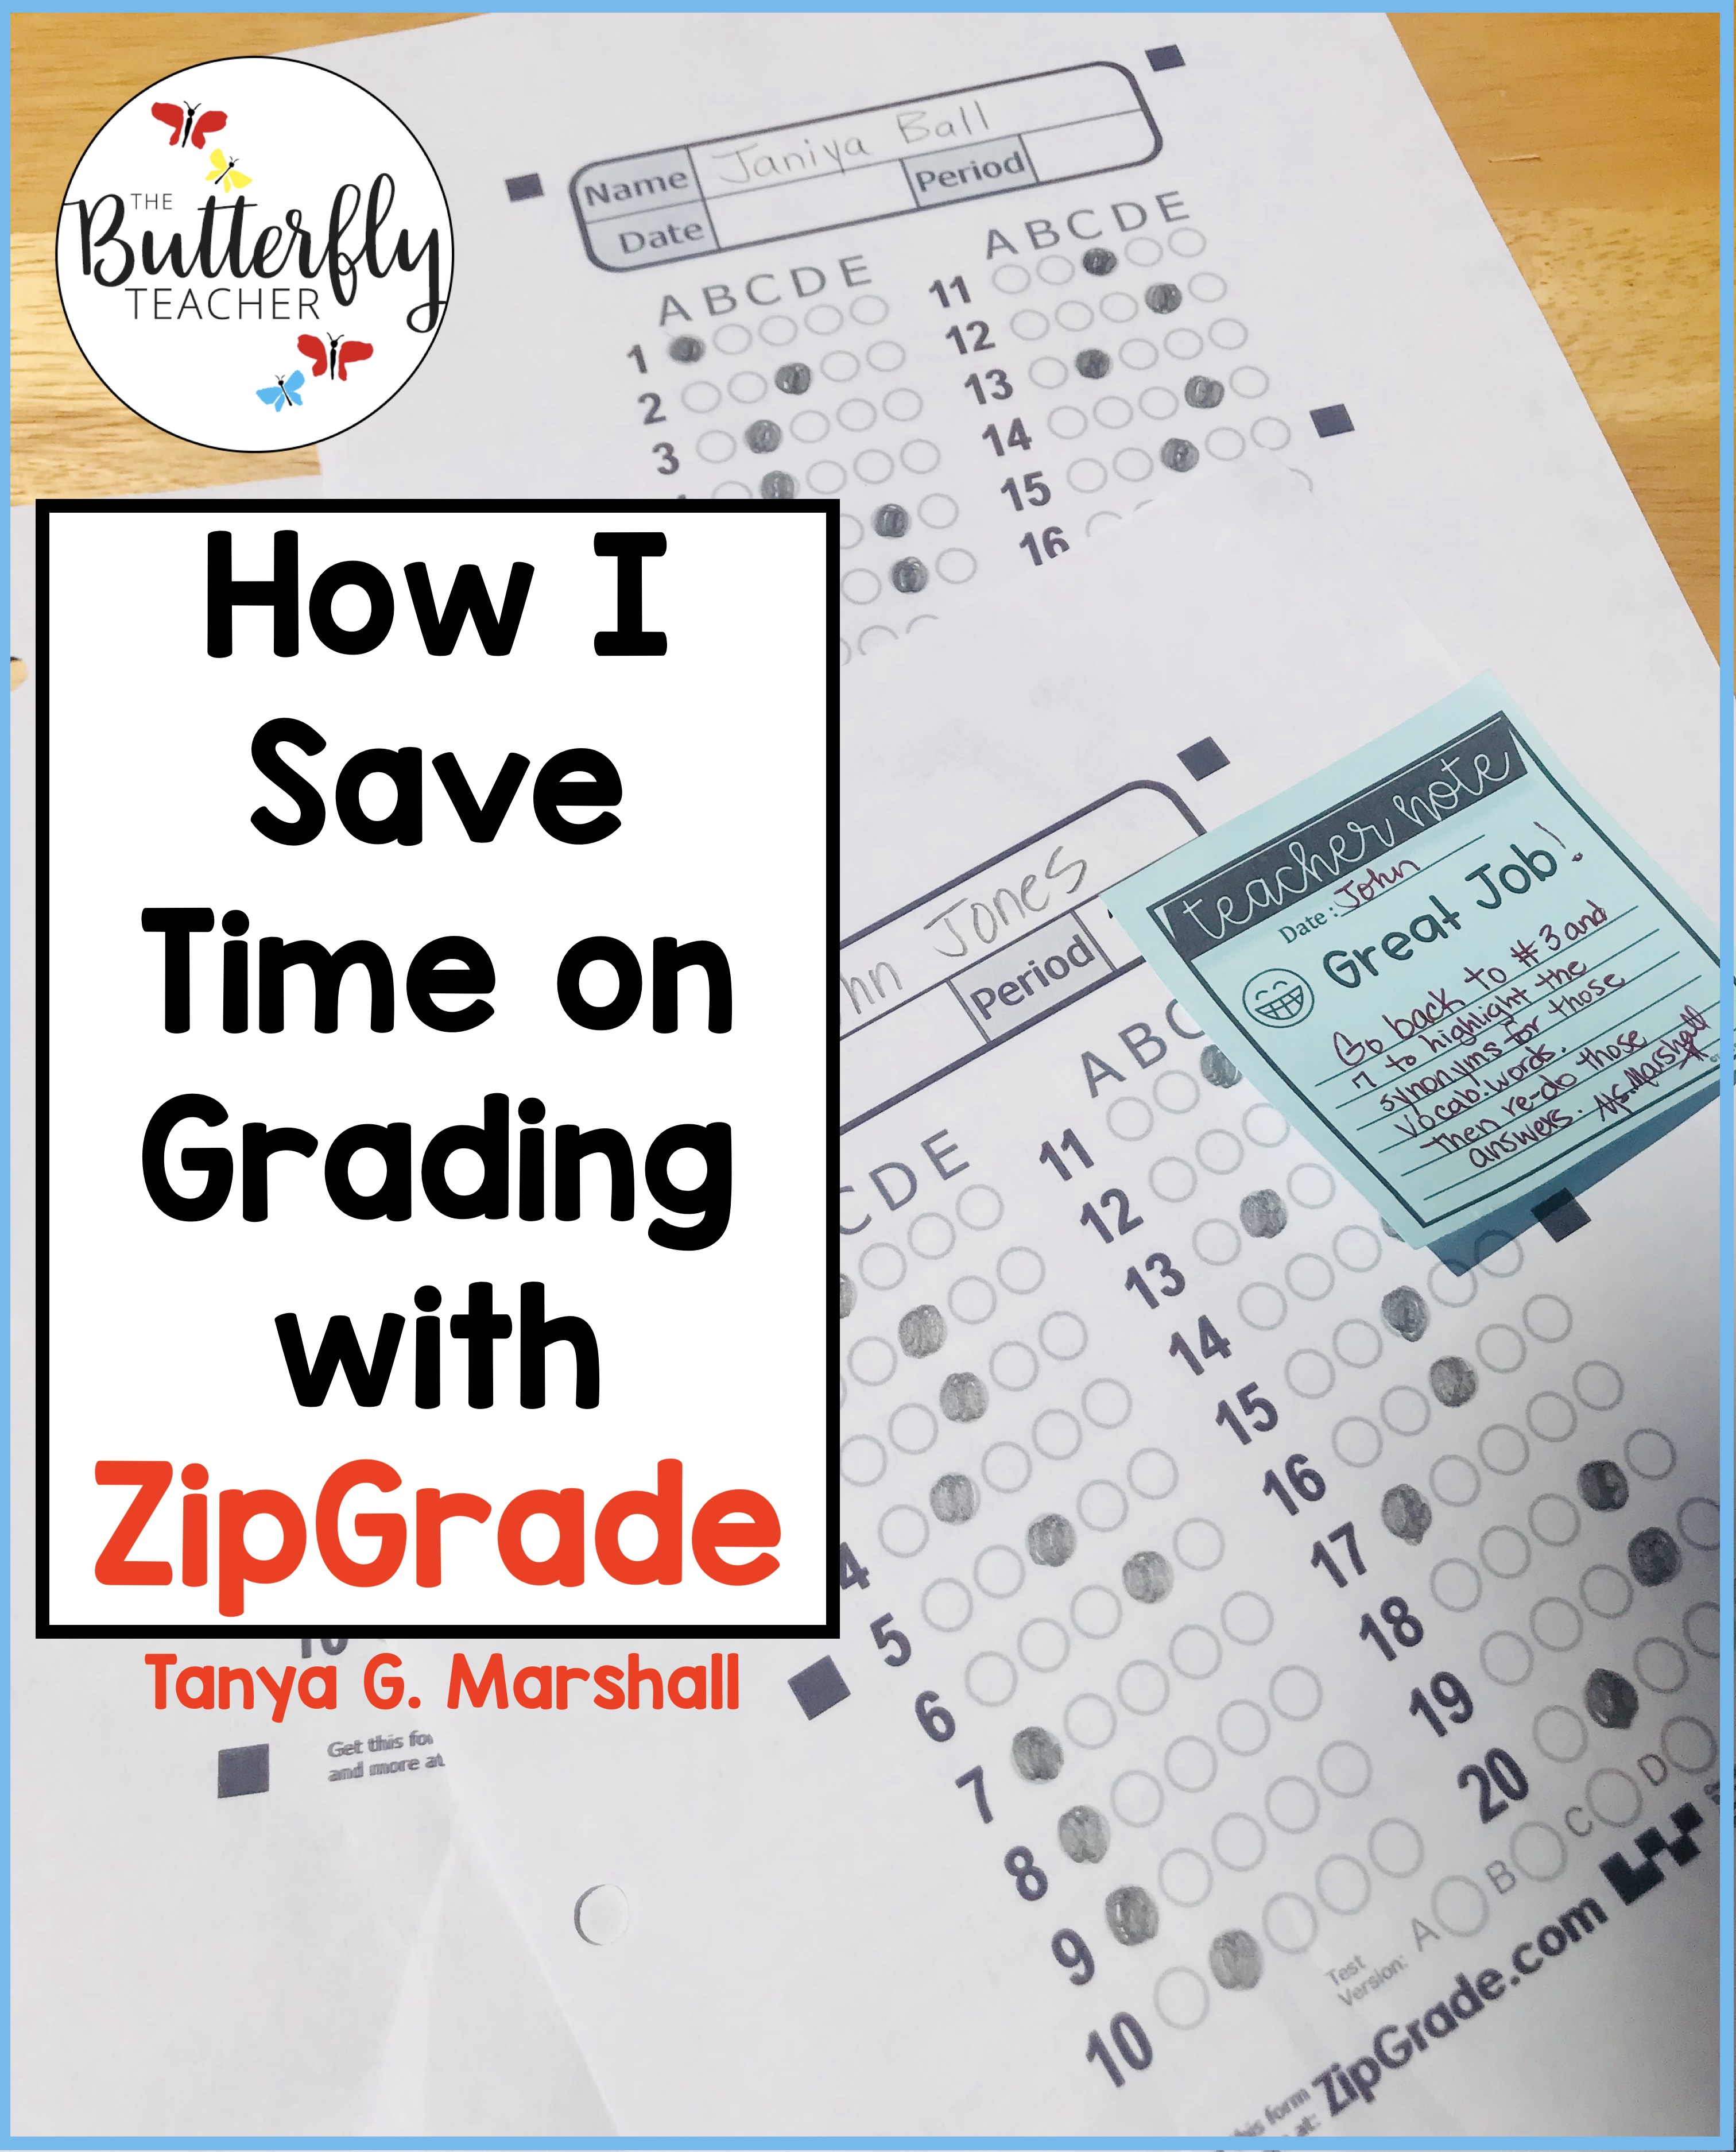 How I Save Time Grading Student Work with ZipGrade | The